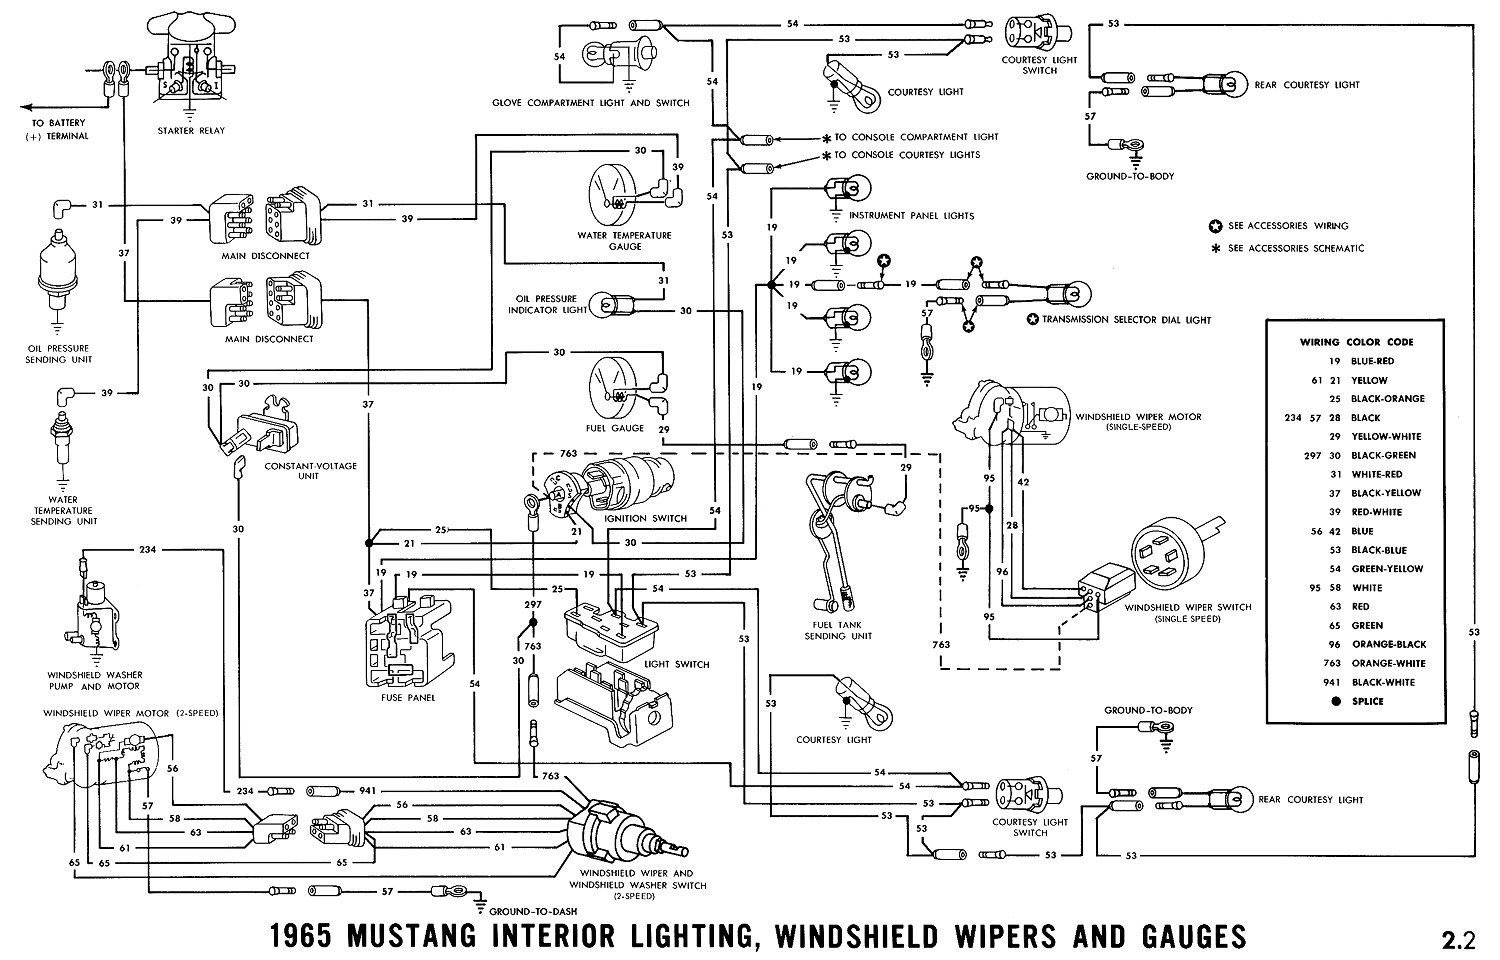 wiring diagram for 1993 mustang bezel wiring diagram libraries 1965 mustang wiring diagrams average joe restorationwiring diagram for 1993 mustang bezel 6